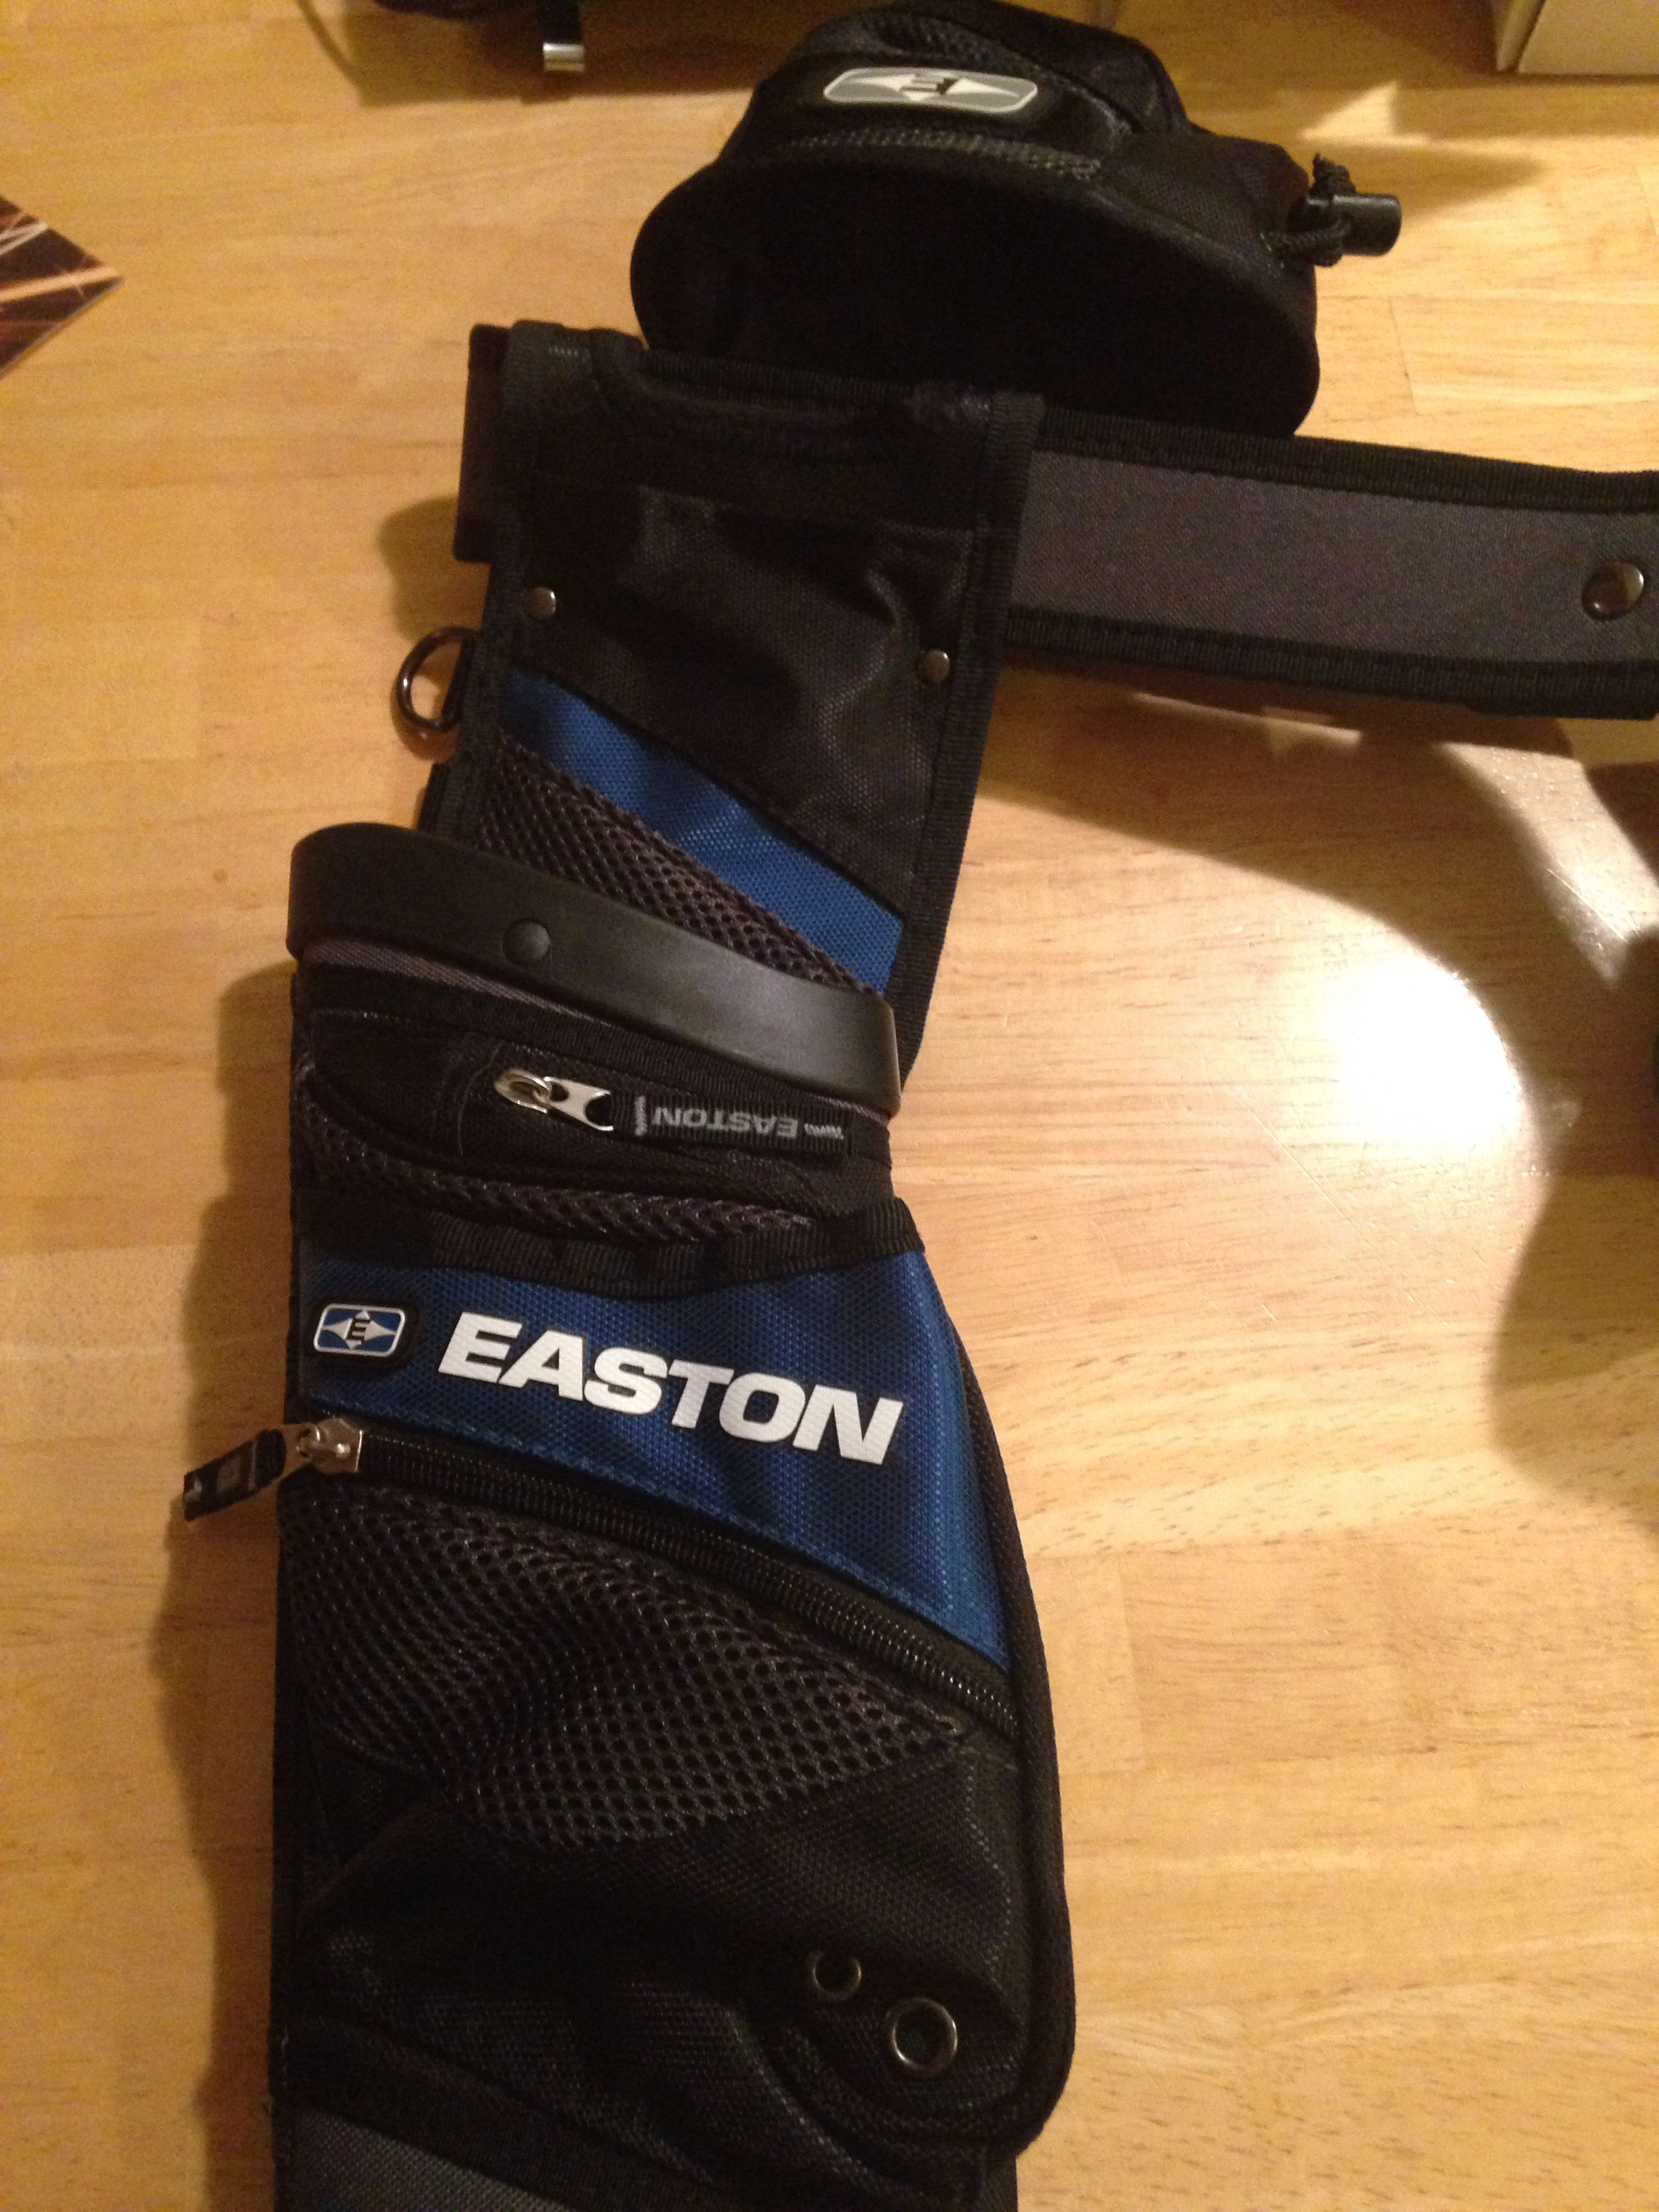 Easton field quiver! You can find these baby's on Lancaster archery supplies or any other popular archery dealers!